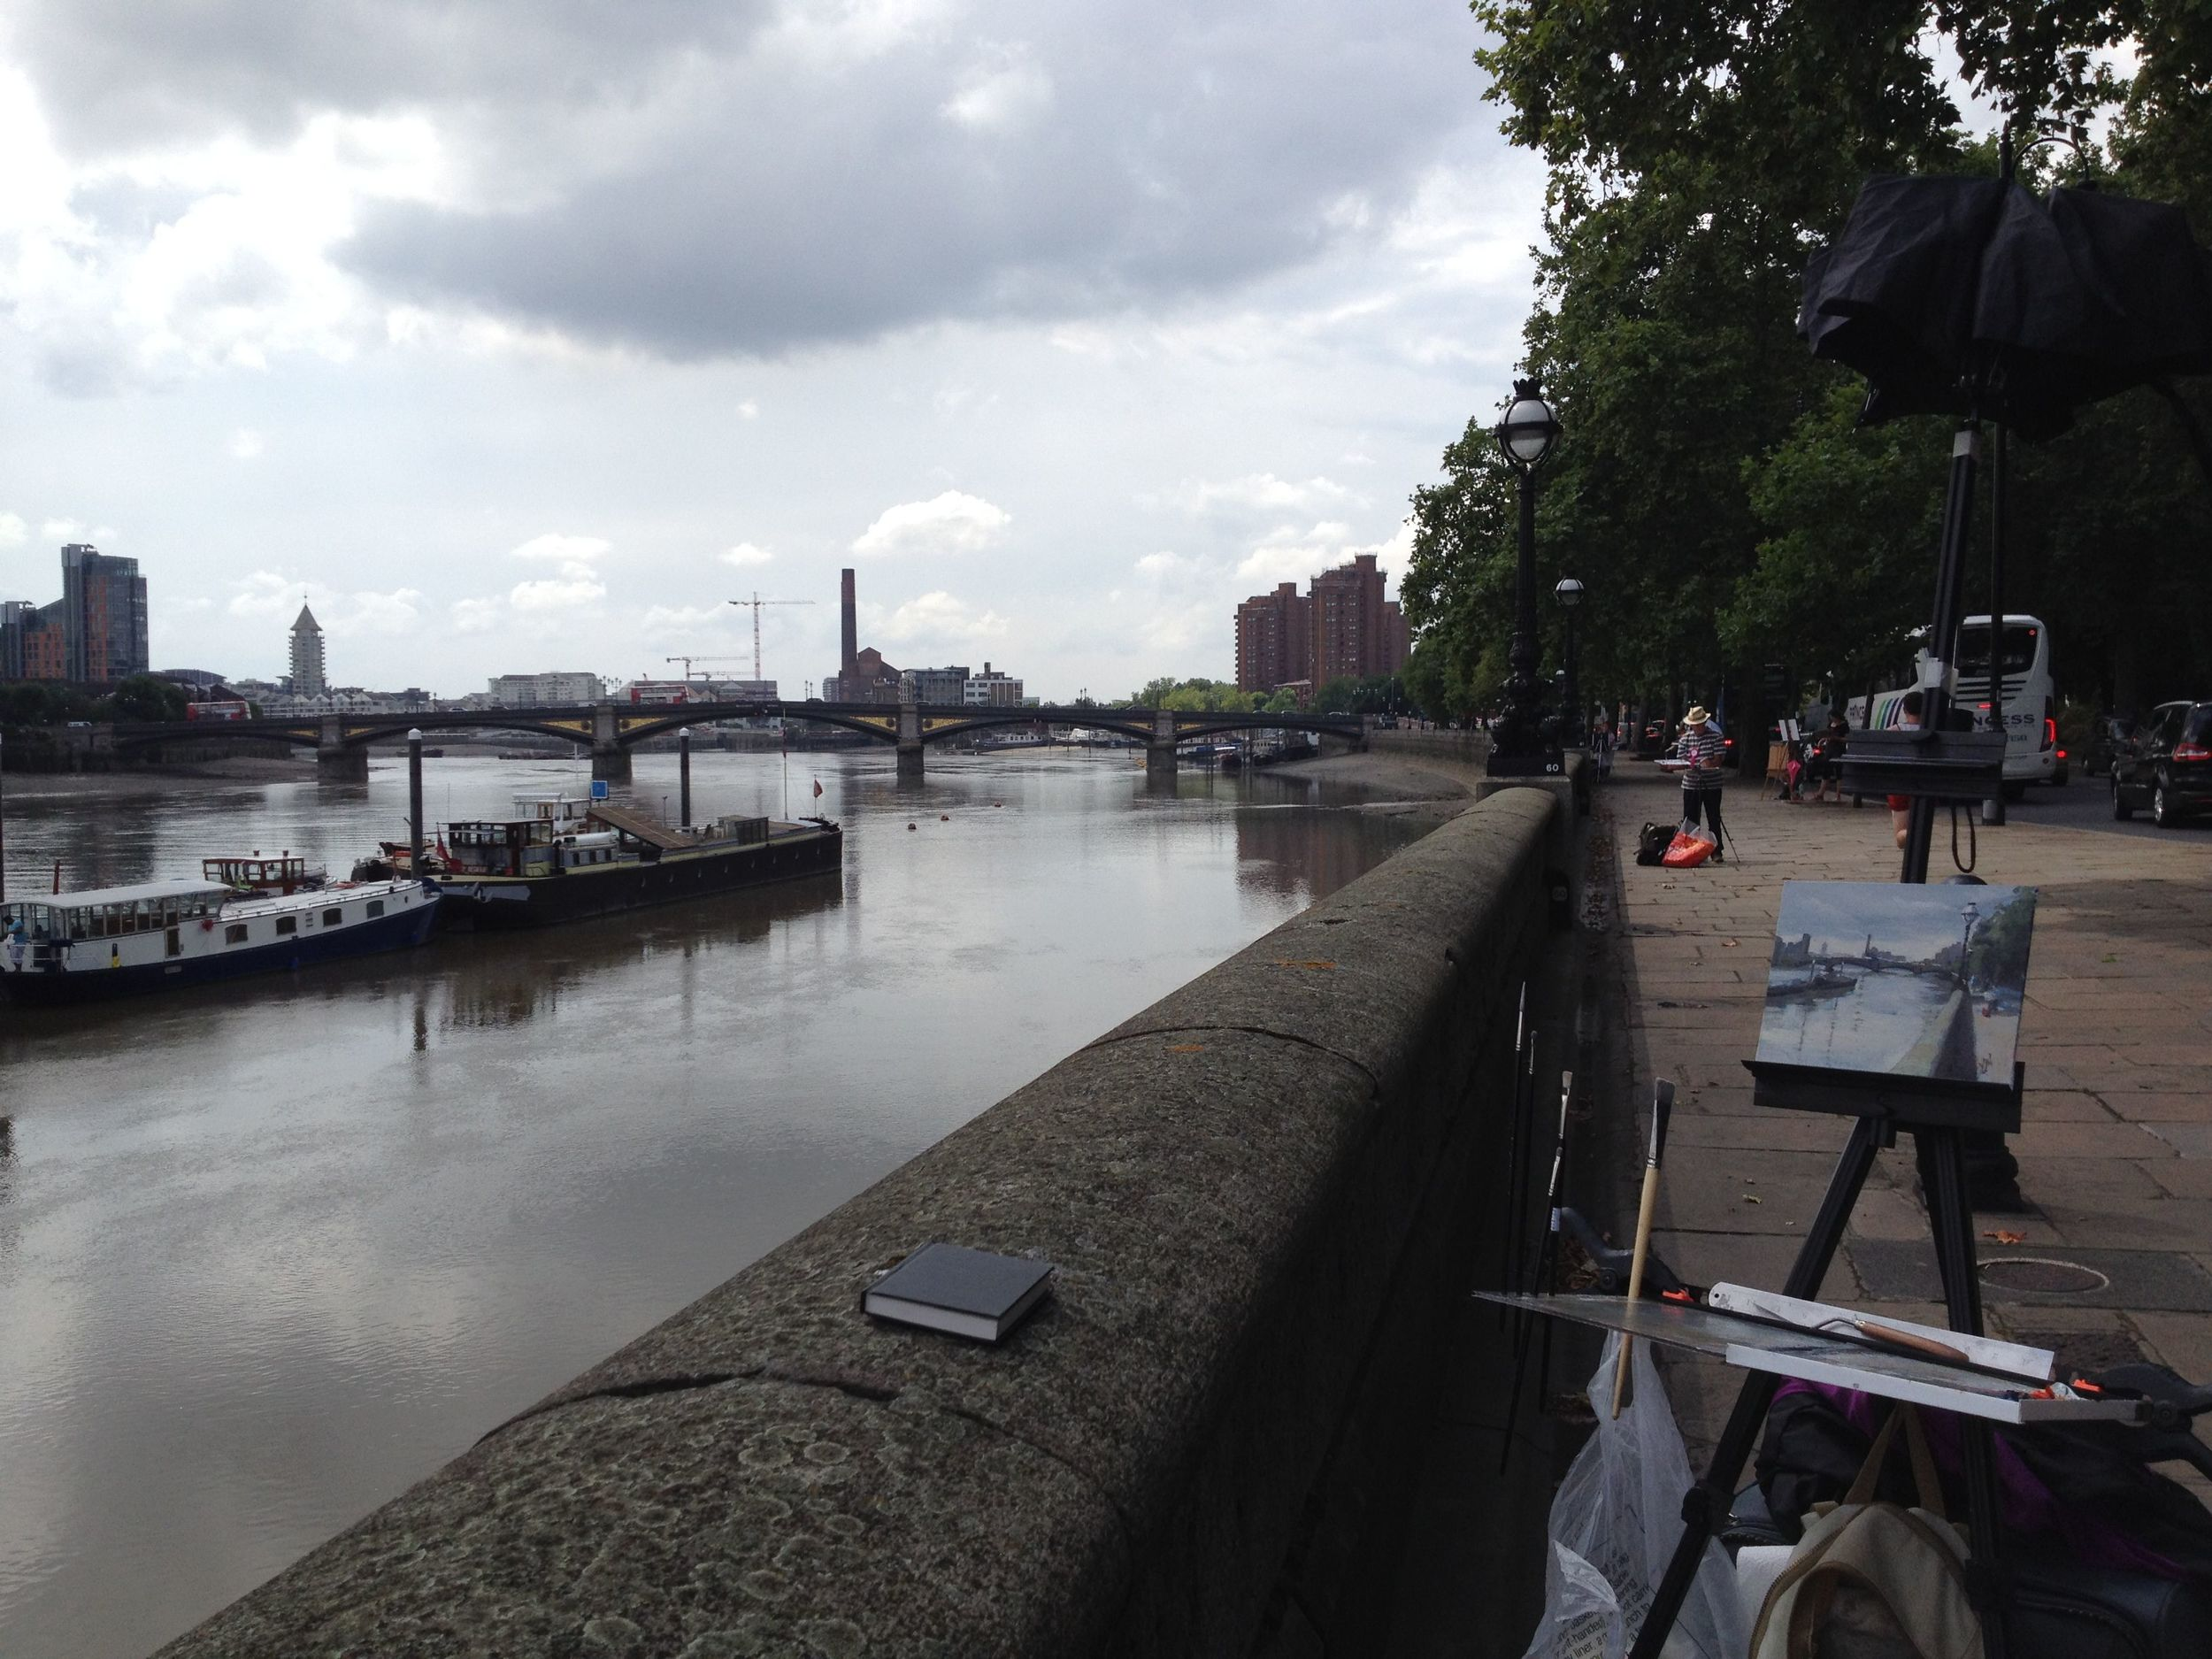 View from the embankment - including other painters!